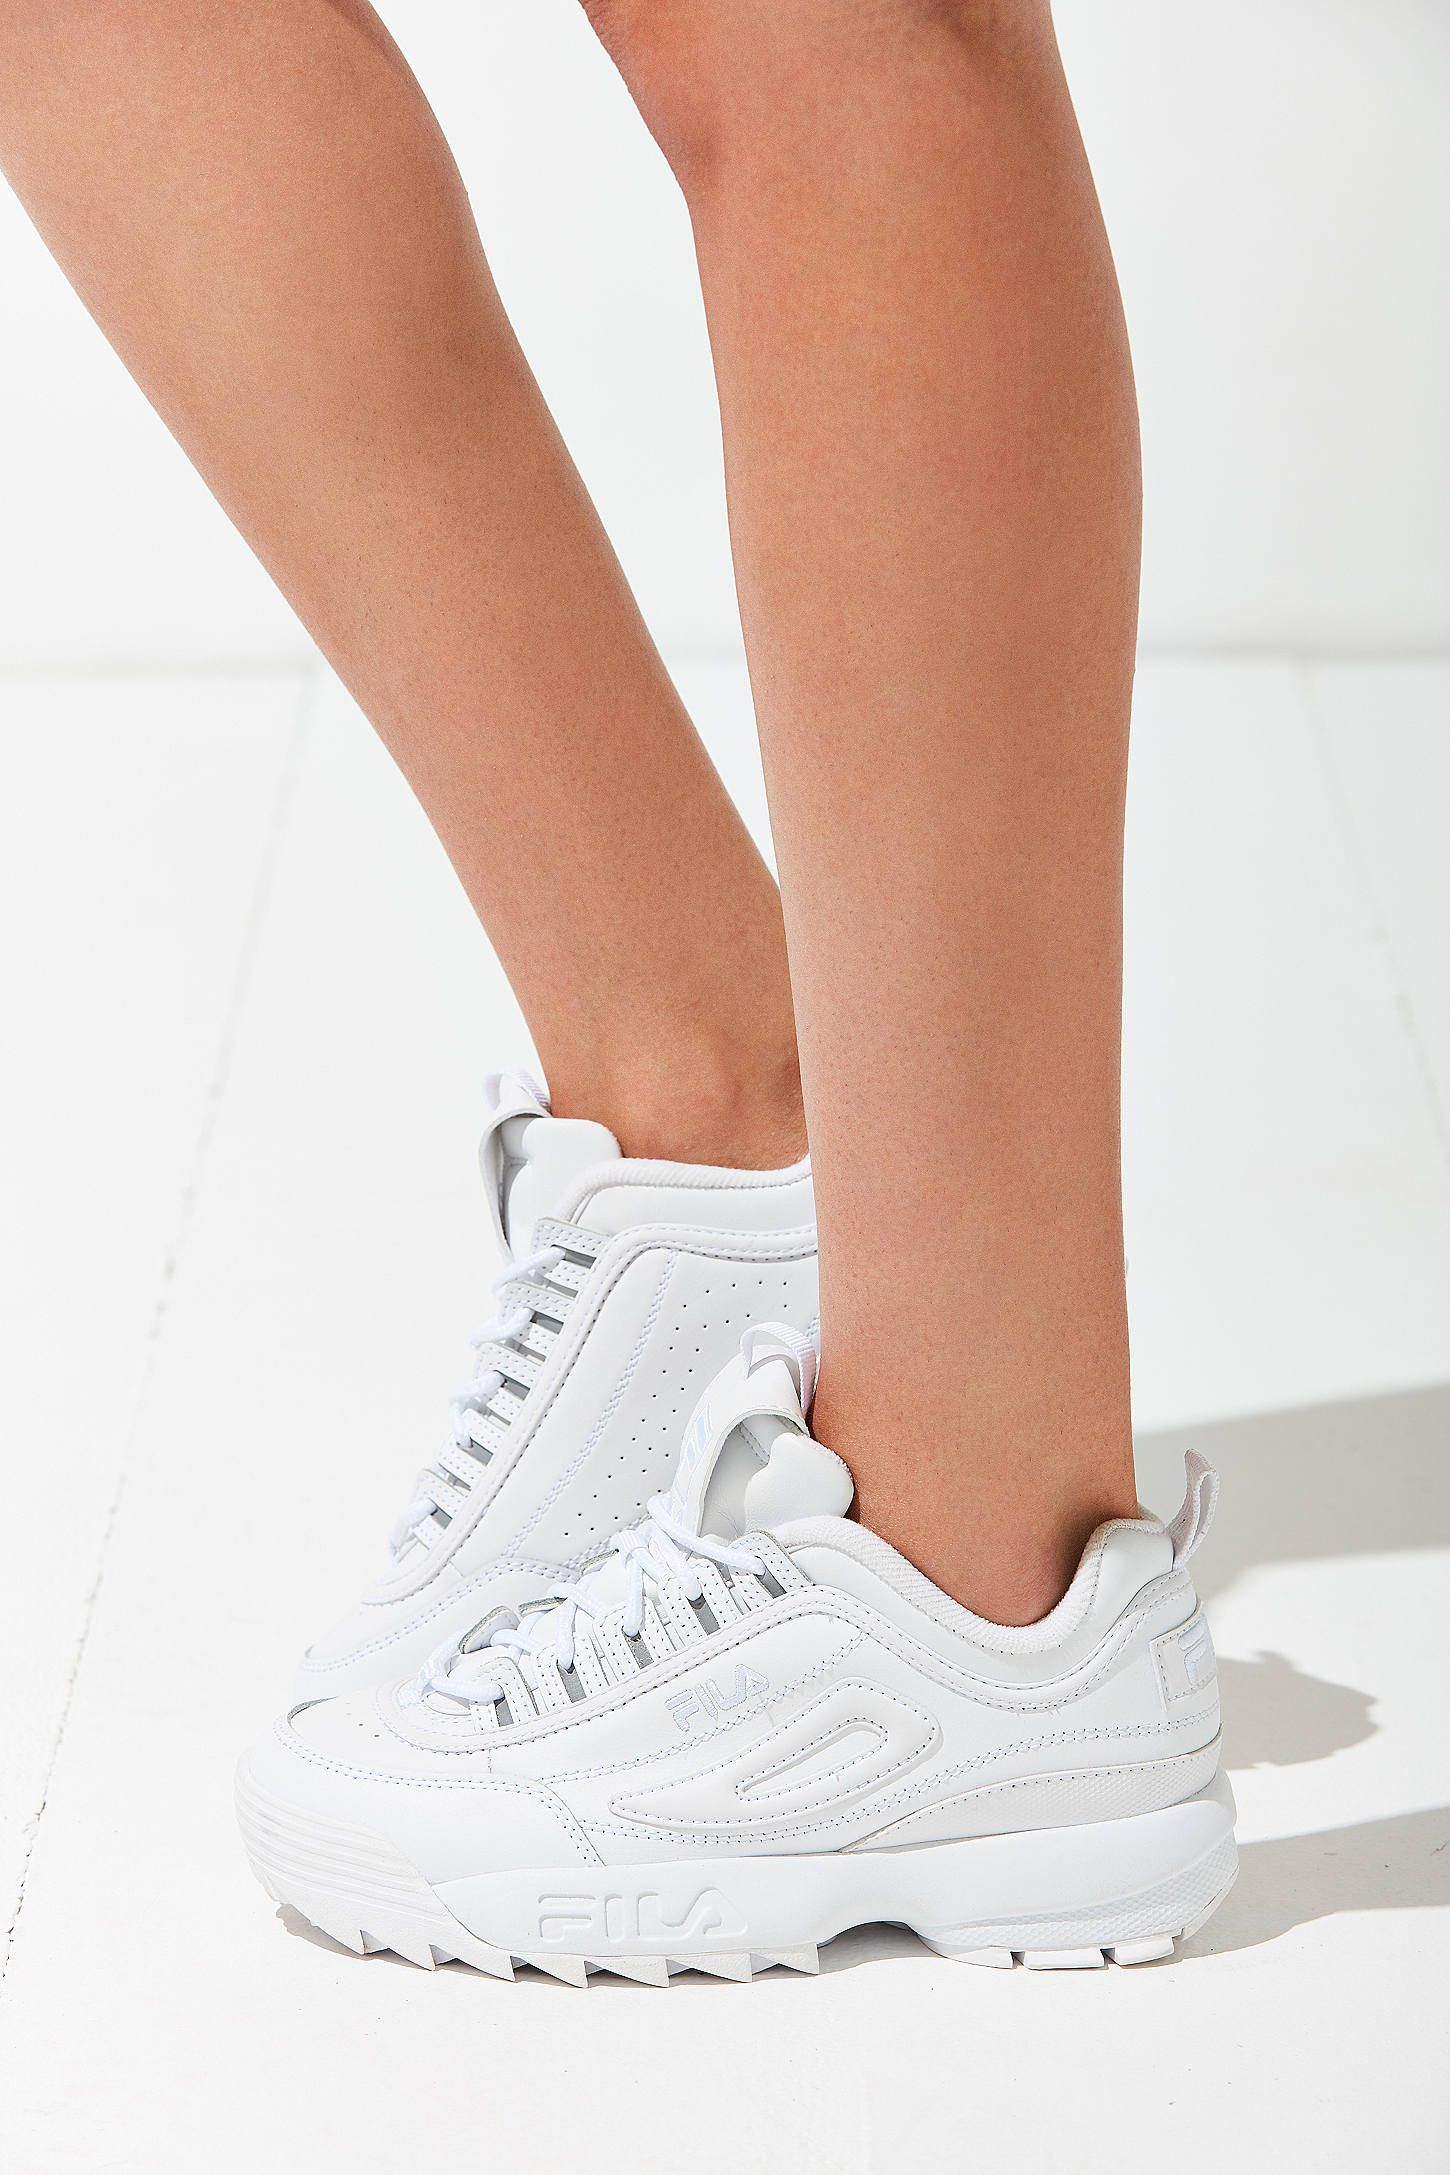 7762b0a177cb Shop FILA Disruptor 2 Premium Mono Sneaker at Urban Outfitters today. We  carry all the latest styles